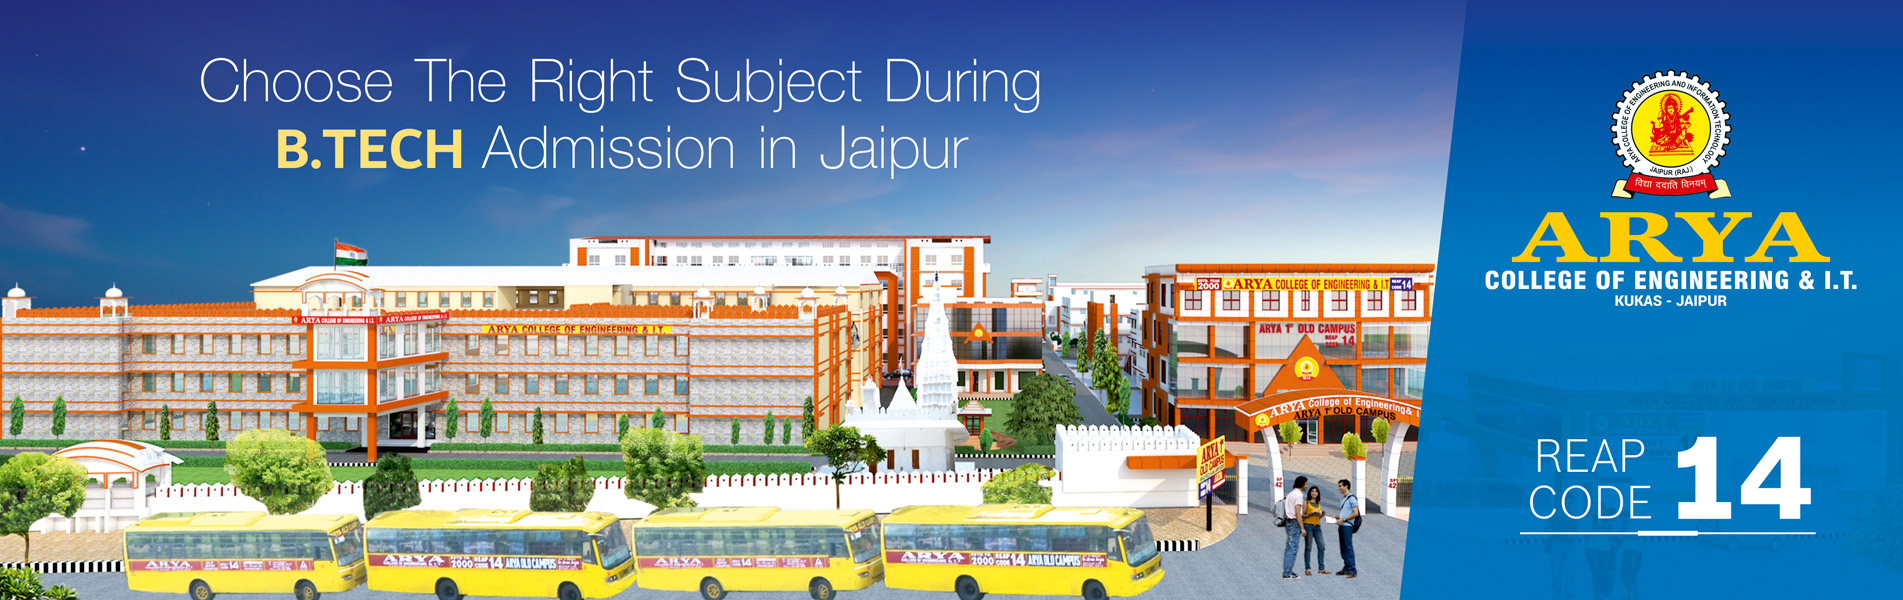 Choose-The-Right-Subject-During-B-Tech-Admission-in-Jaipur